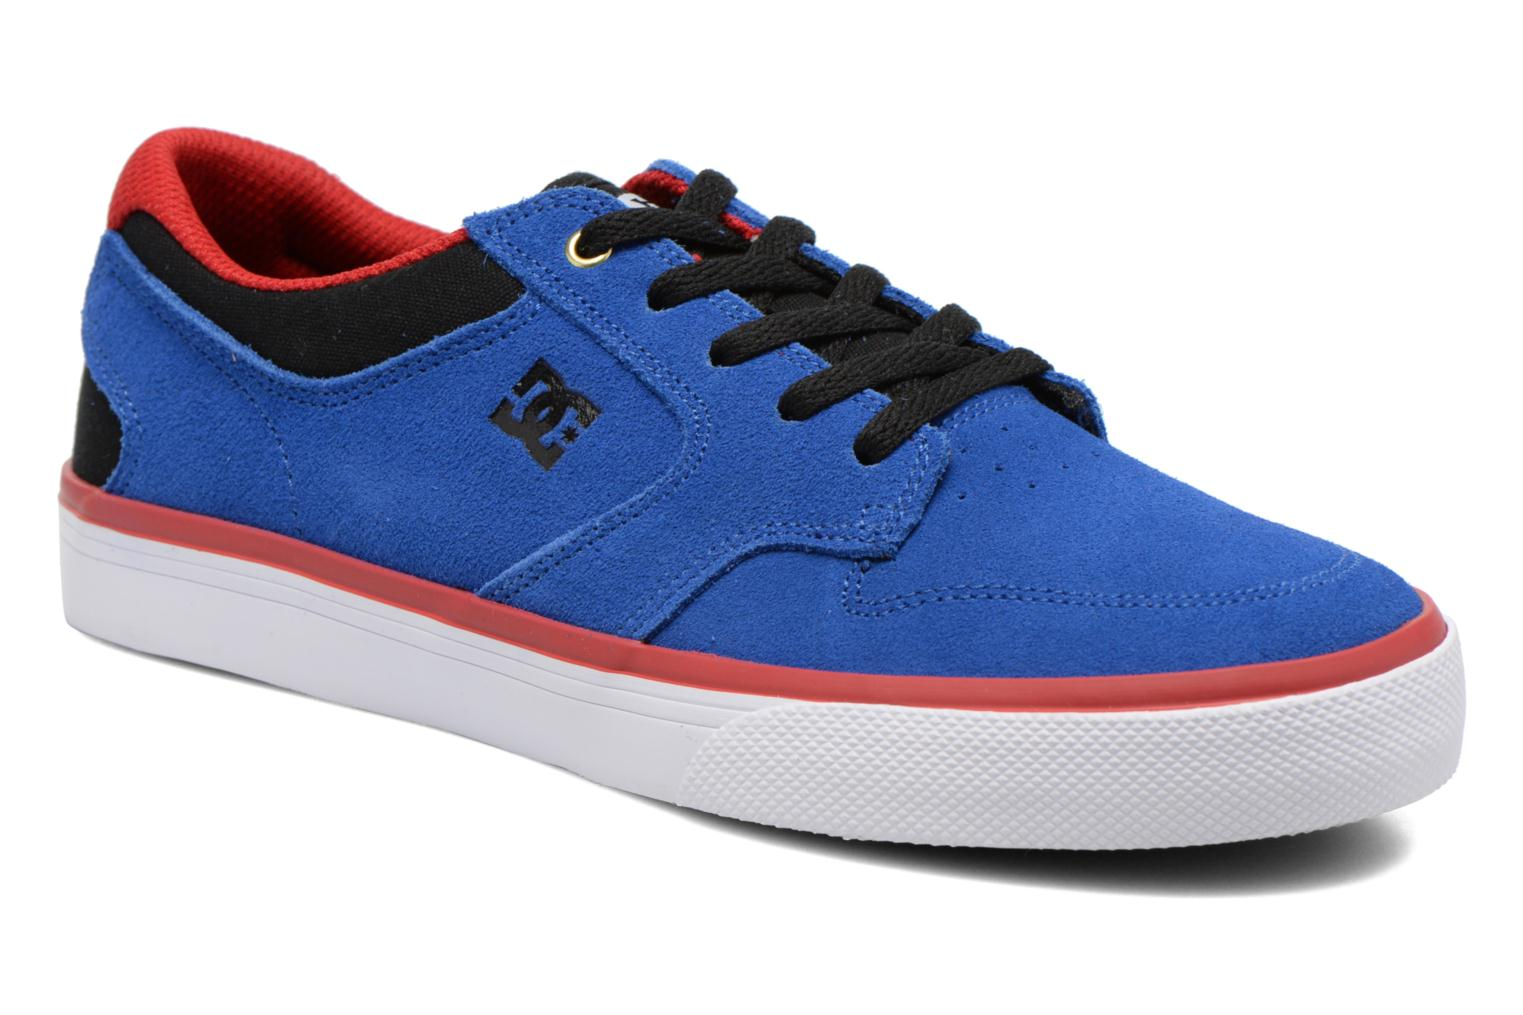 Argosy Vulc Kids Royal/Black/Red